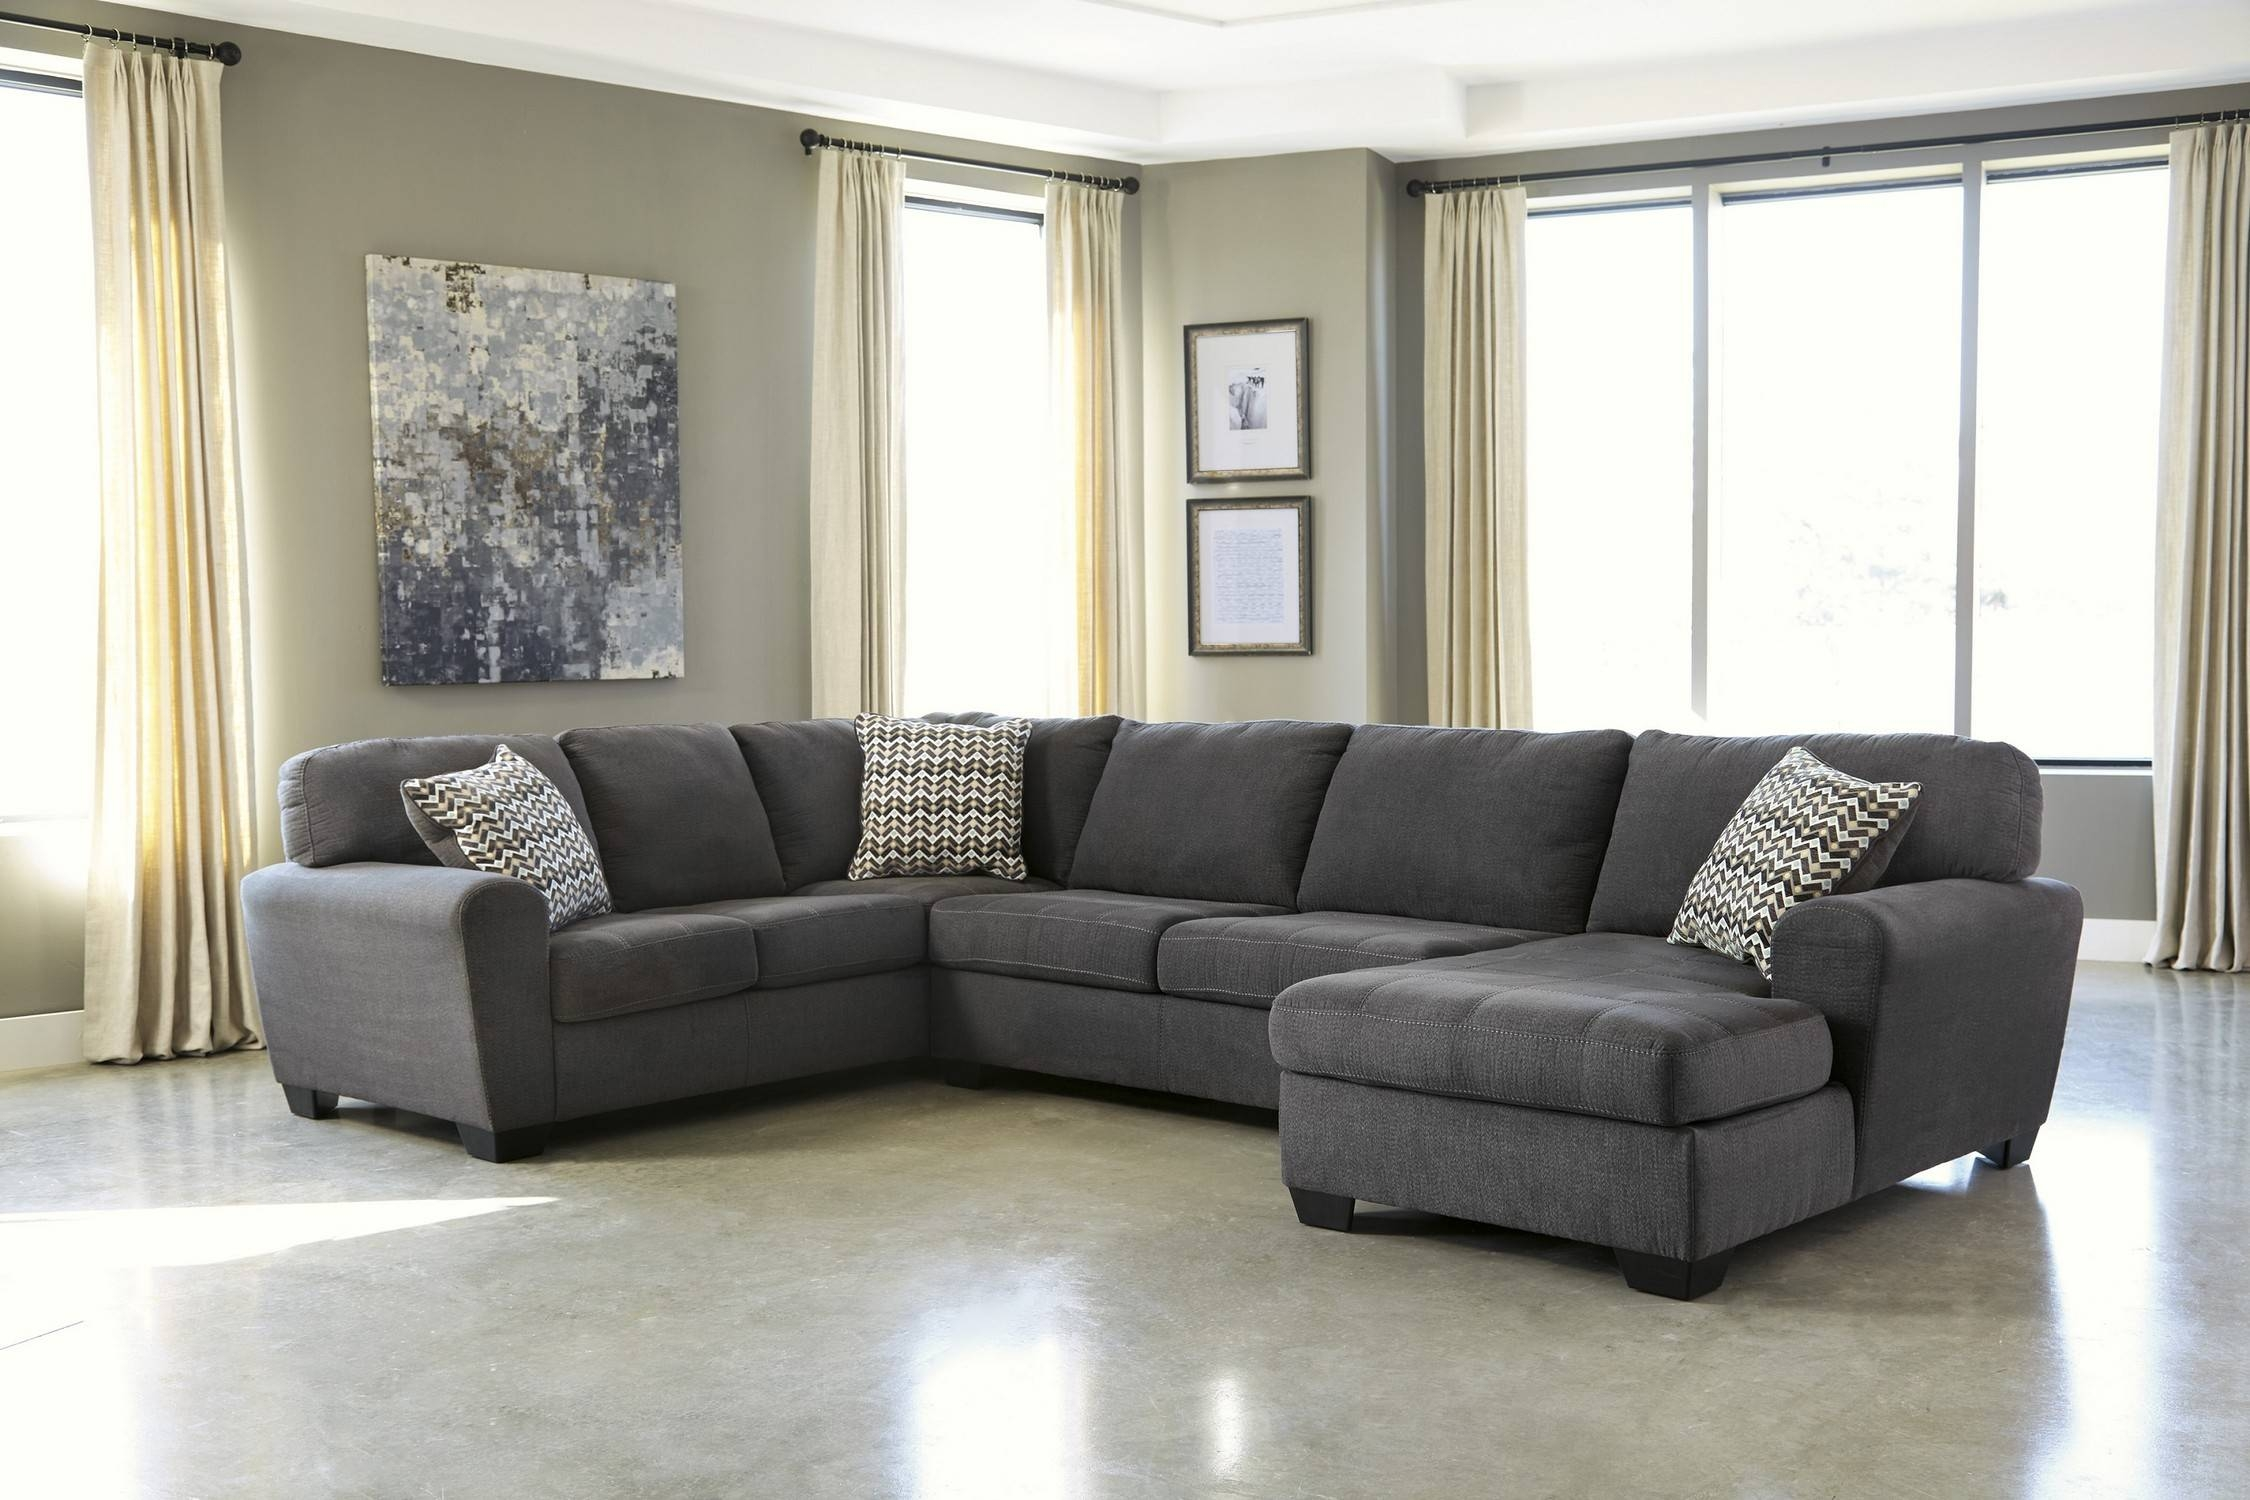 Fancy Charcoal Gray Sectional Sofa 35 In Sofa Table Ideas With with regard to Charcoal Gray Sectional Sofas (Image 4 of 15)